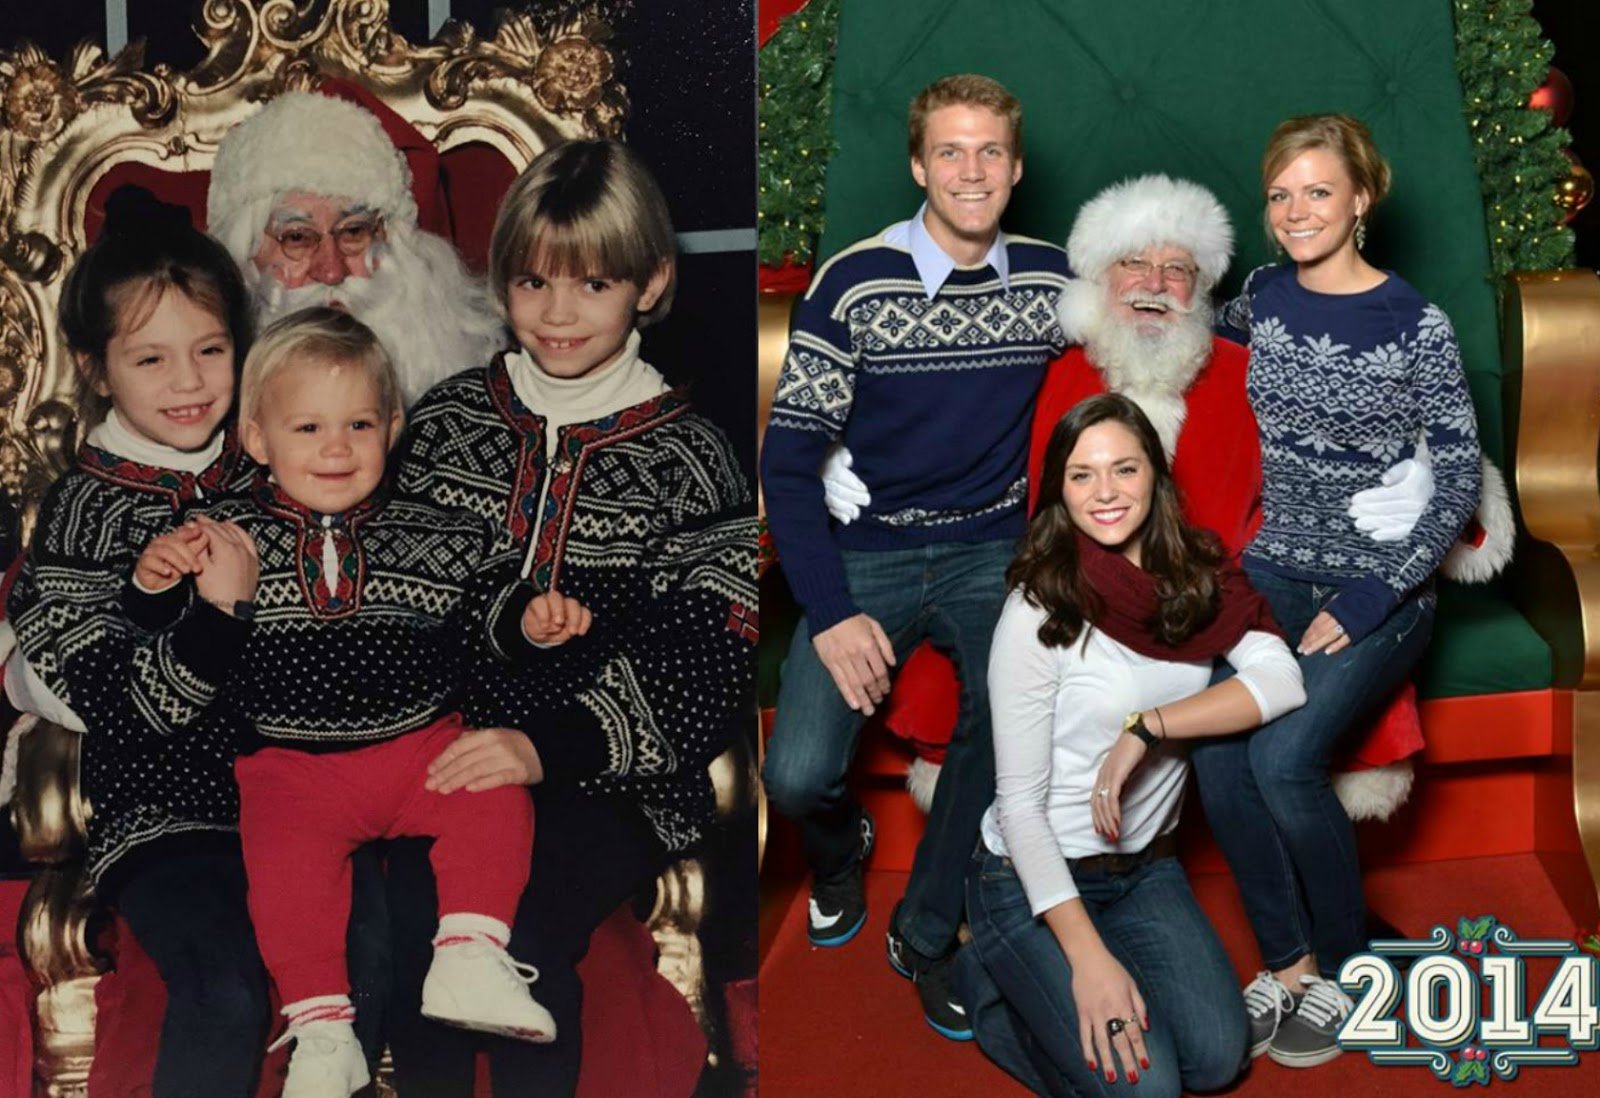 29 years of Santa Photos, Family Santa Christmas Pictures